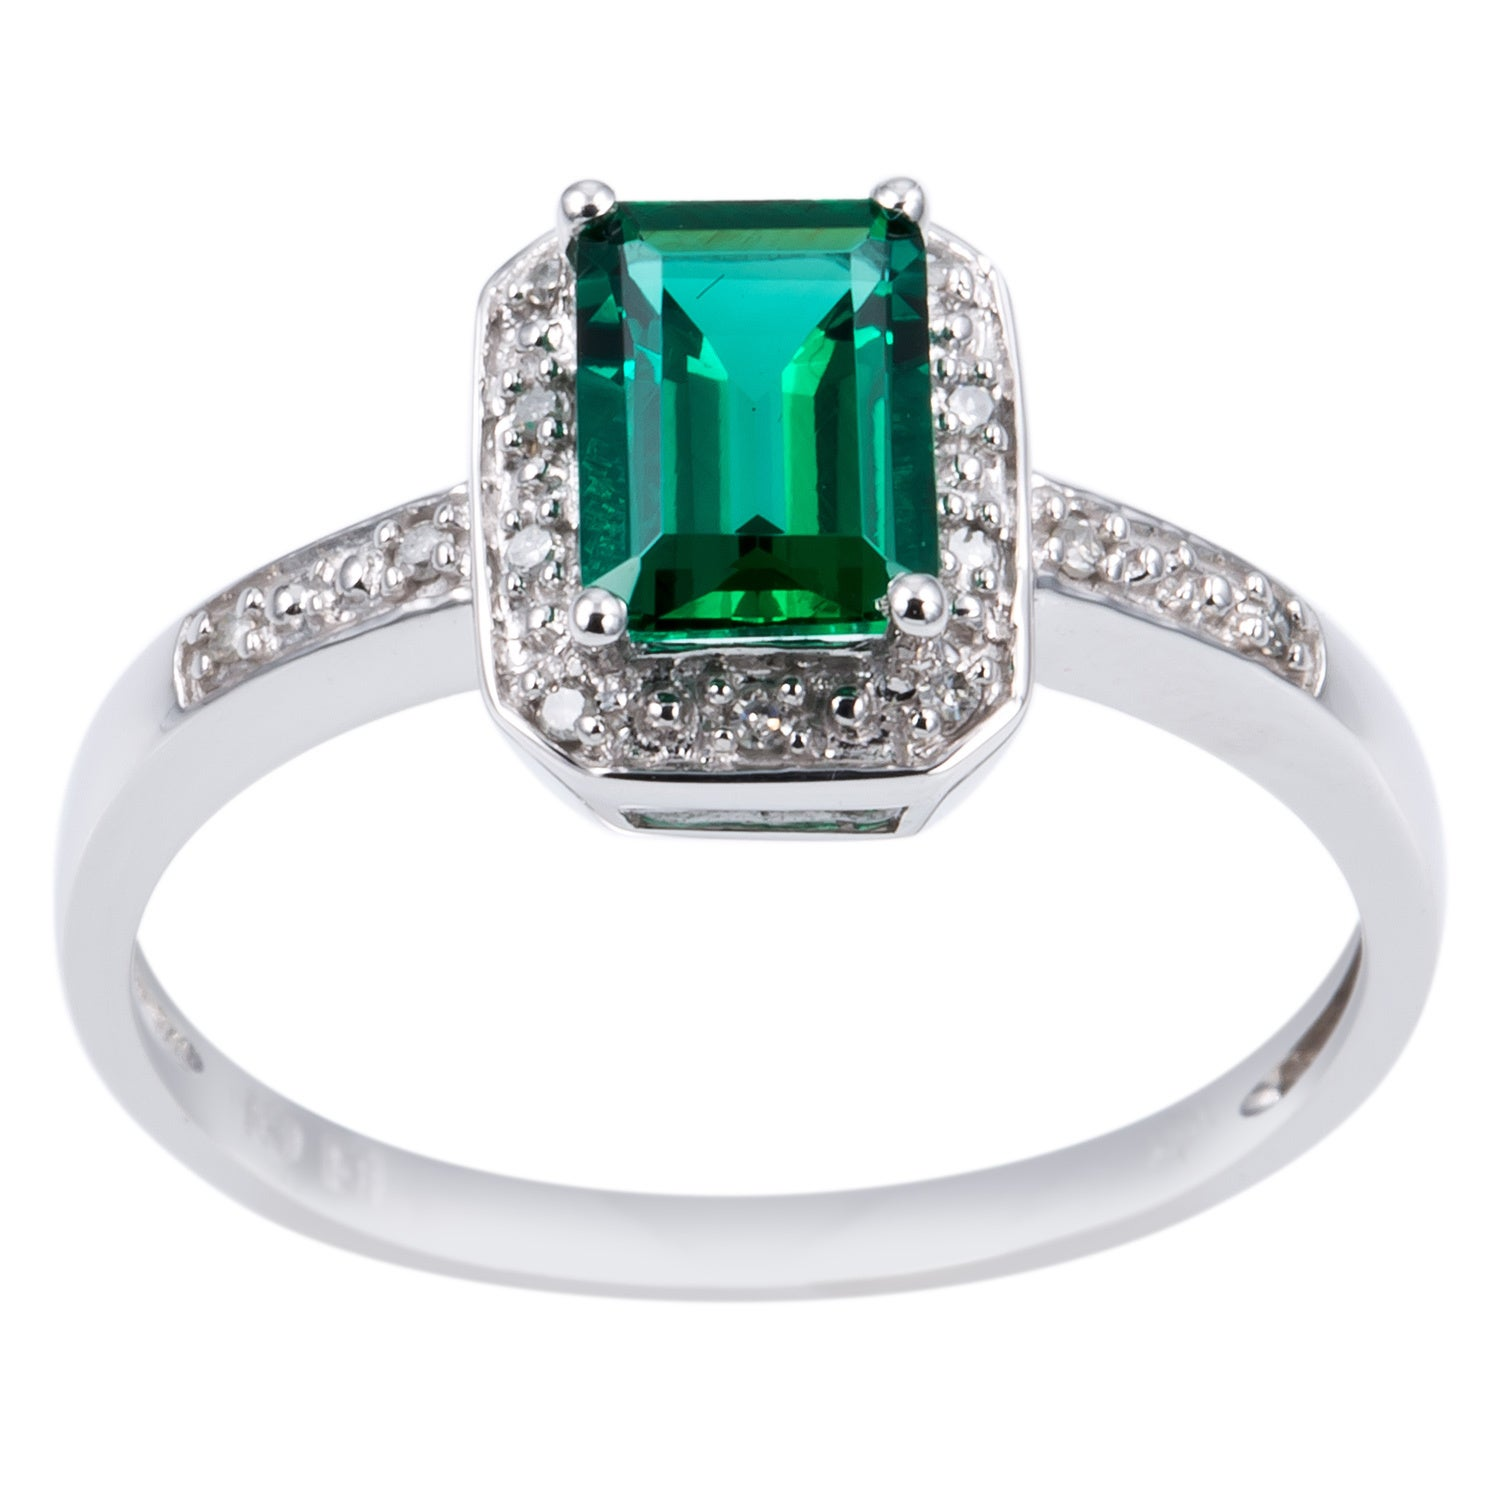 upscale faberg crop shop emerald c emotion the false subsampling product charmeuse scale editor faberge jewellery ring